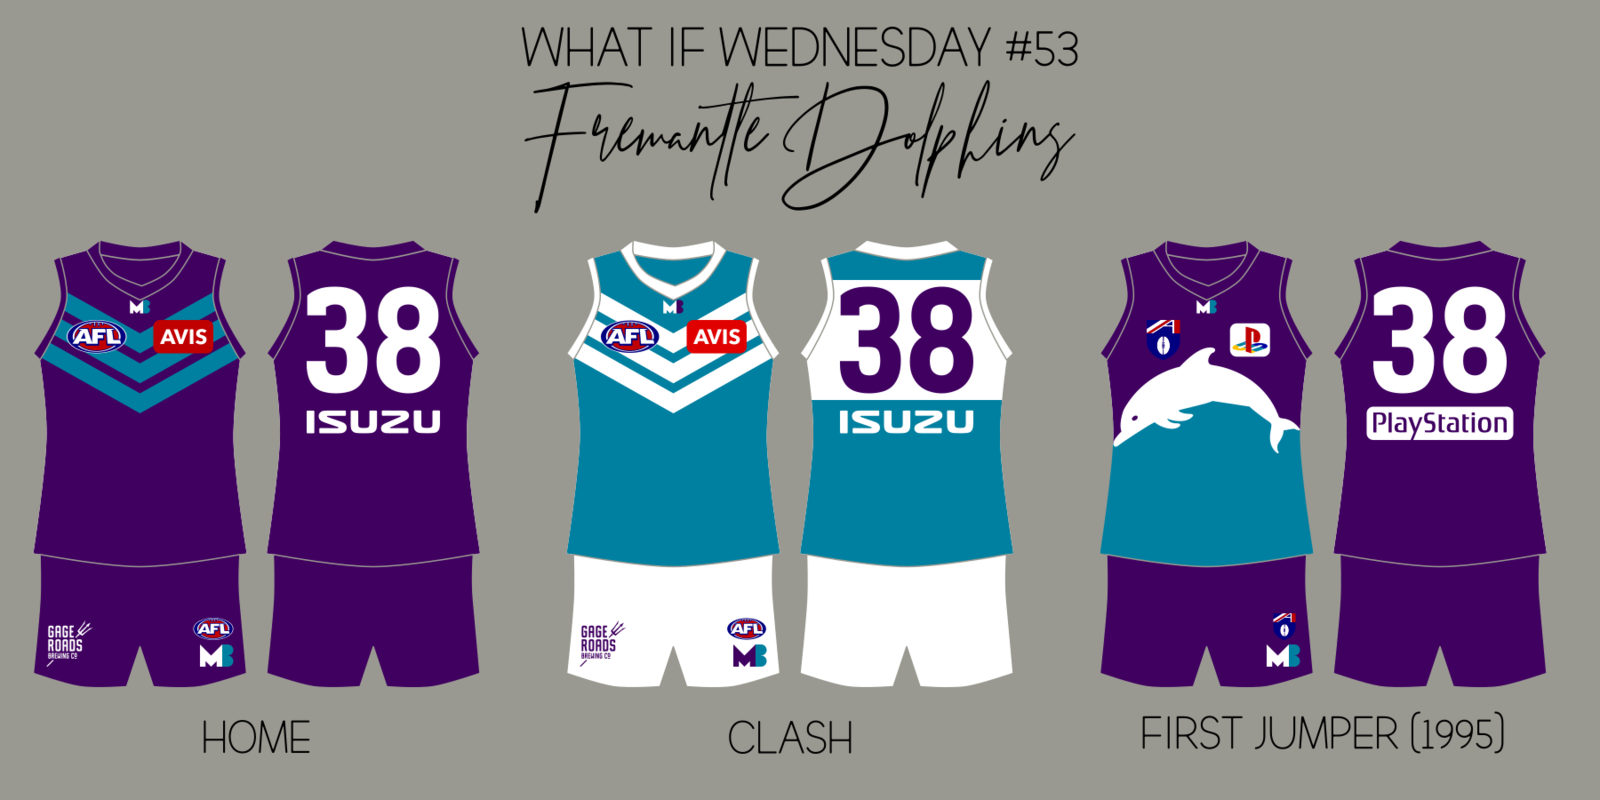 53 Fremantle Dolphins.png